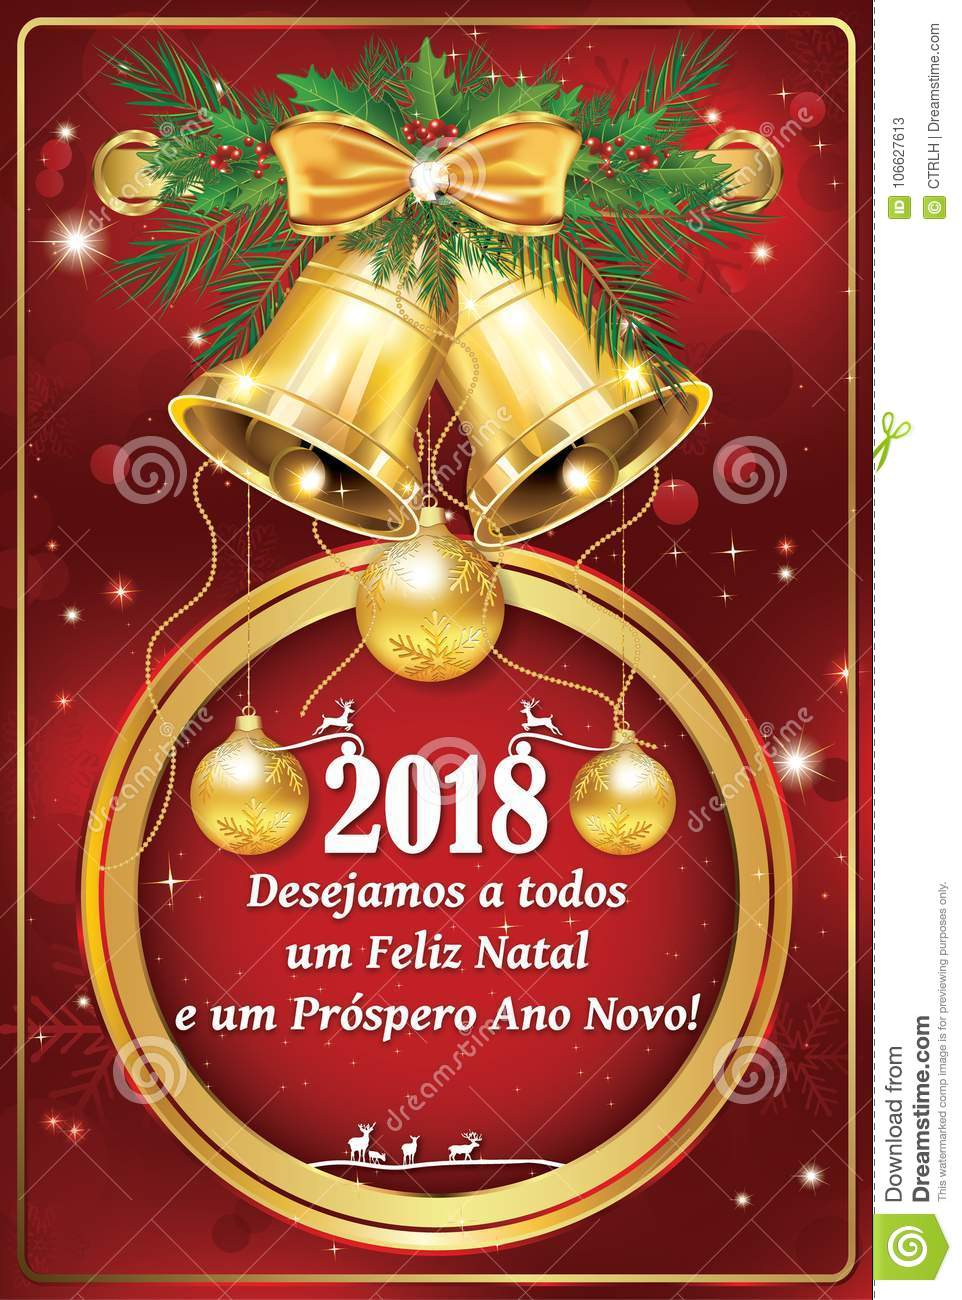 Portuguese business seasons greetings new year card stock portuguese business seasons greetings christmas new year card portuguese text we wish you merry christmas and happy new year print colors used m4hsunfo